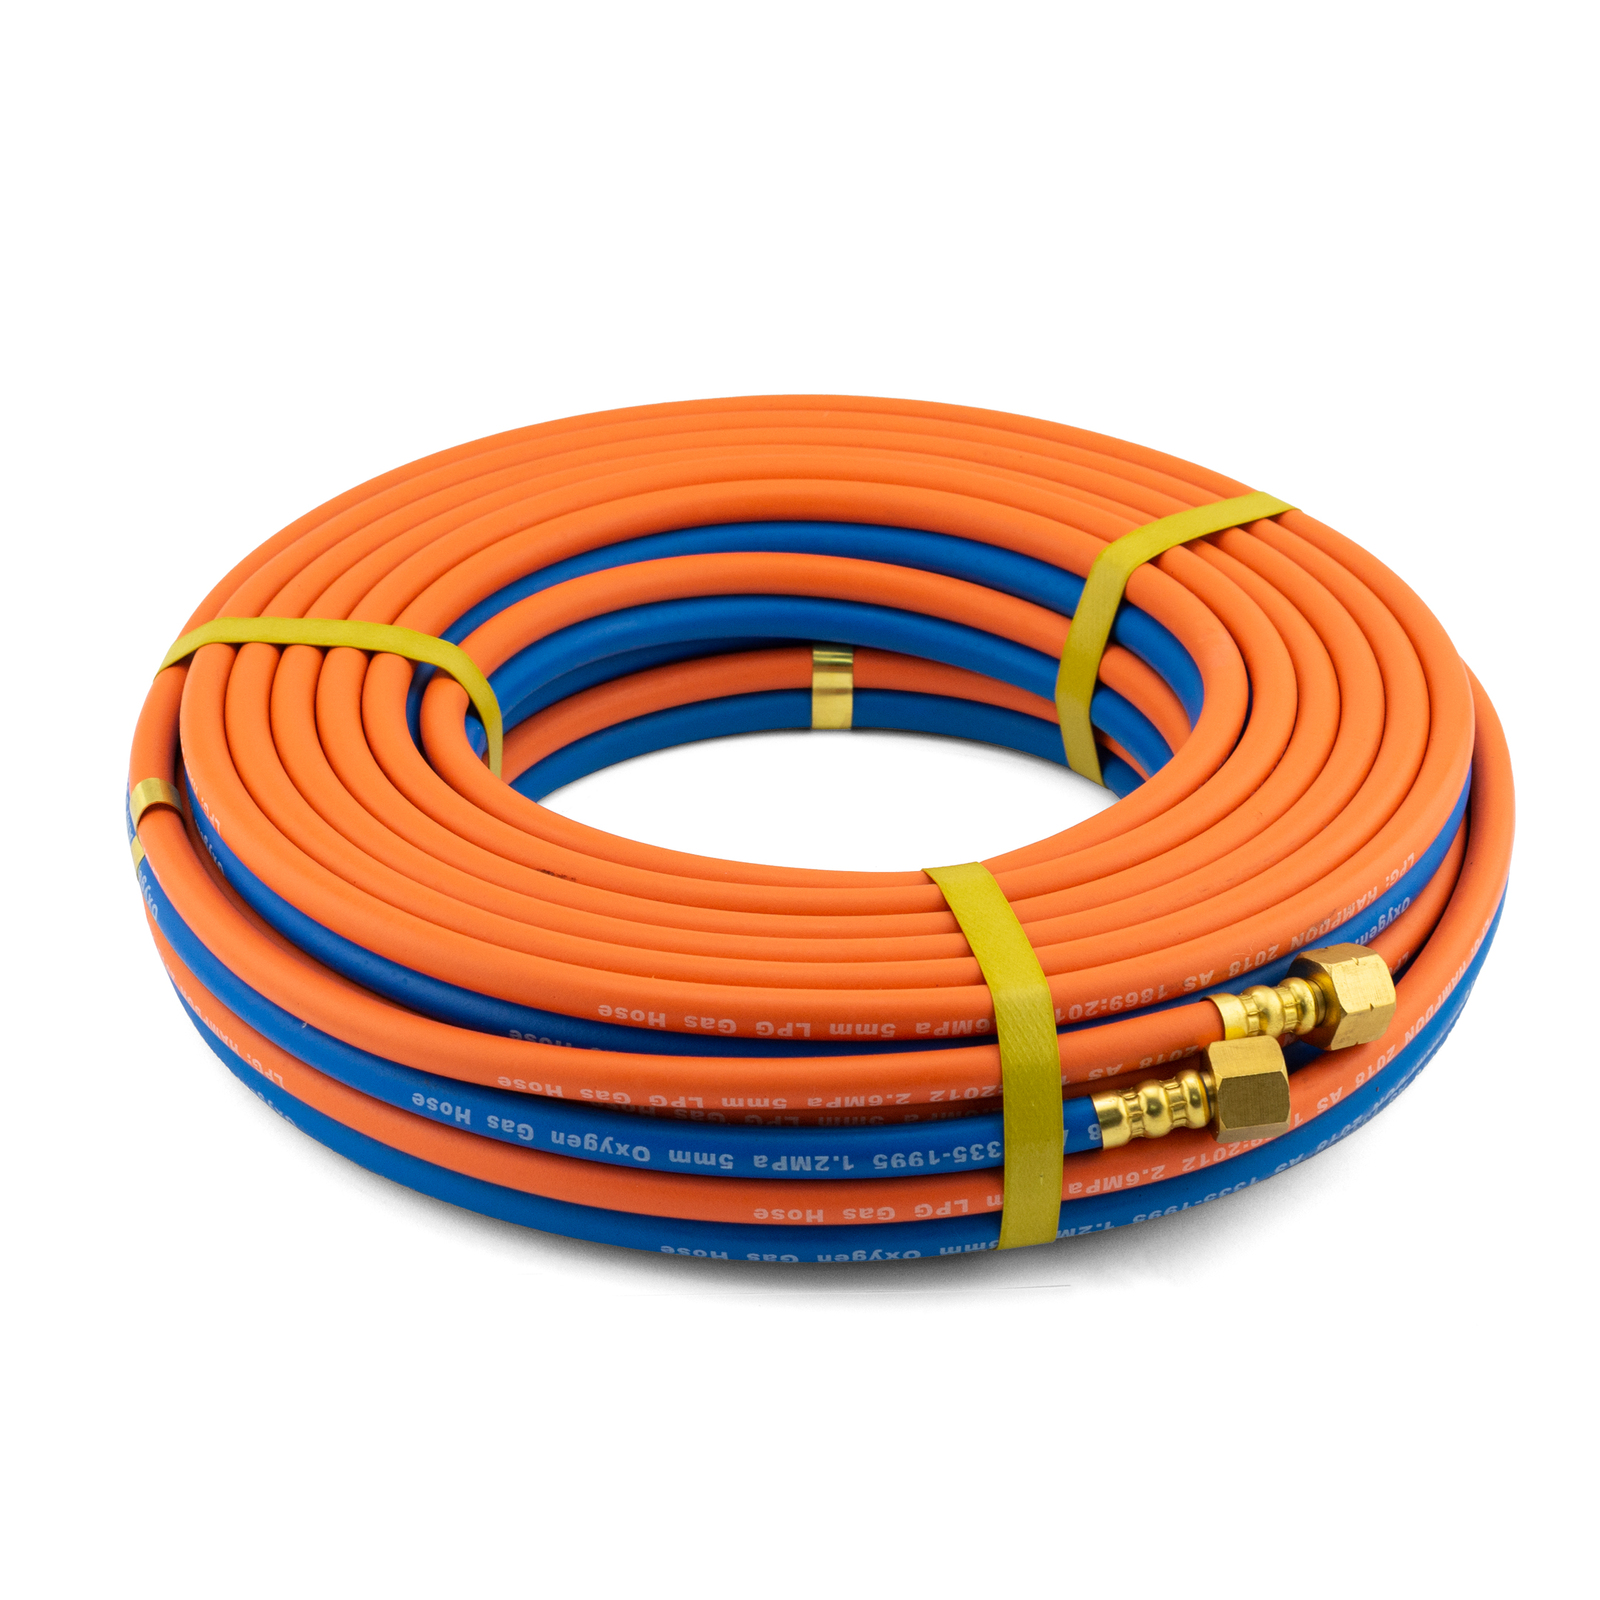 5 meter 10mm High Flow OxyLPG Twin Hose with fittings Industrial